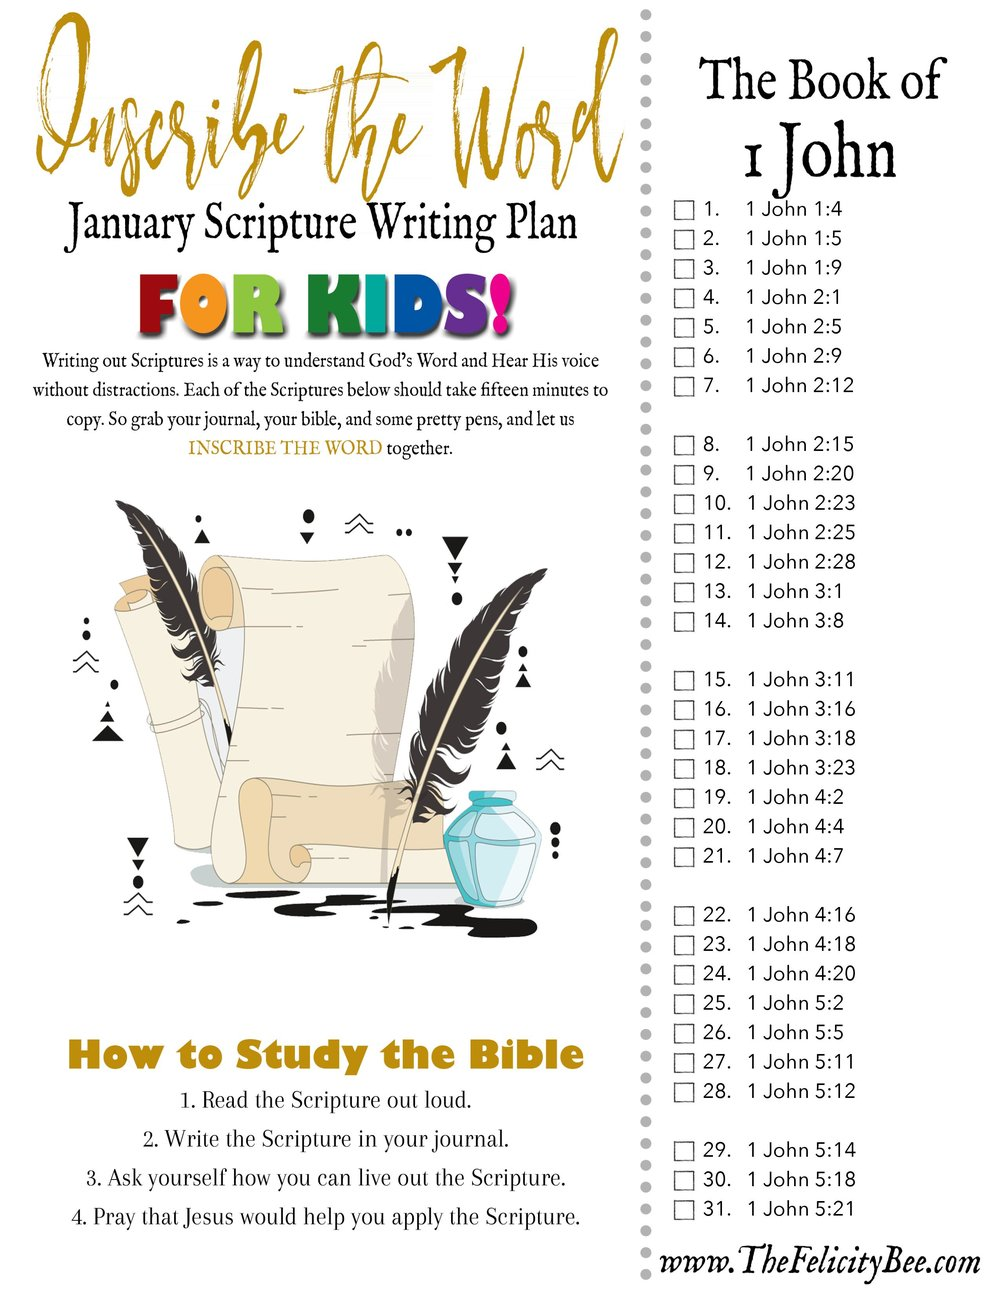 CLICK HERE  to download your 2018 January Scripture Writing Plan FOR KIDS!